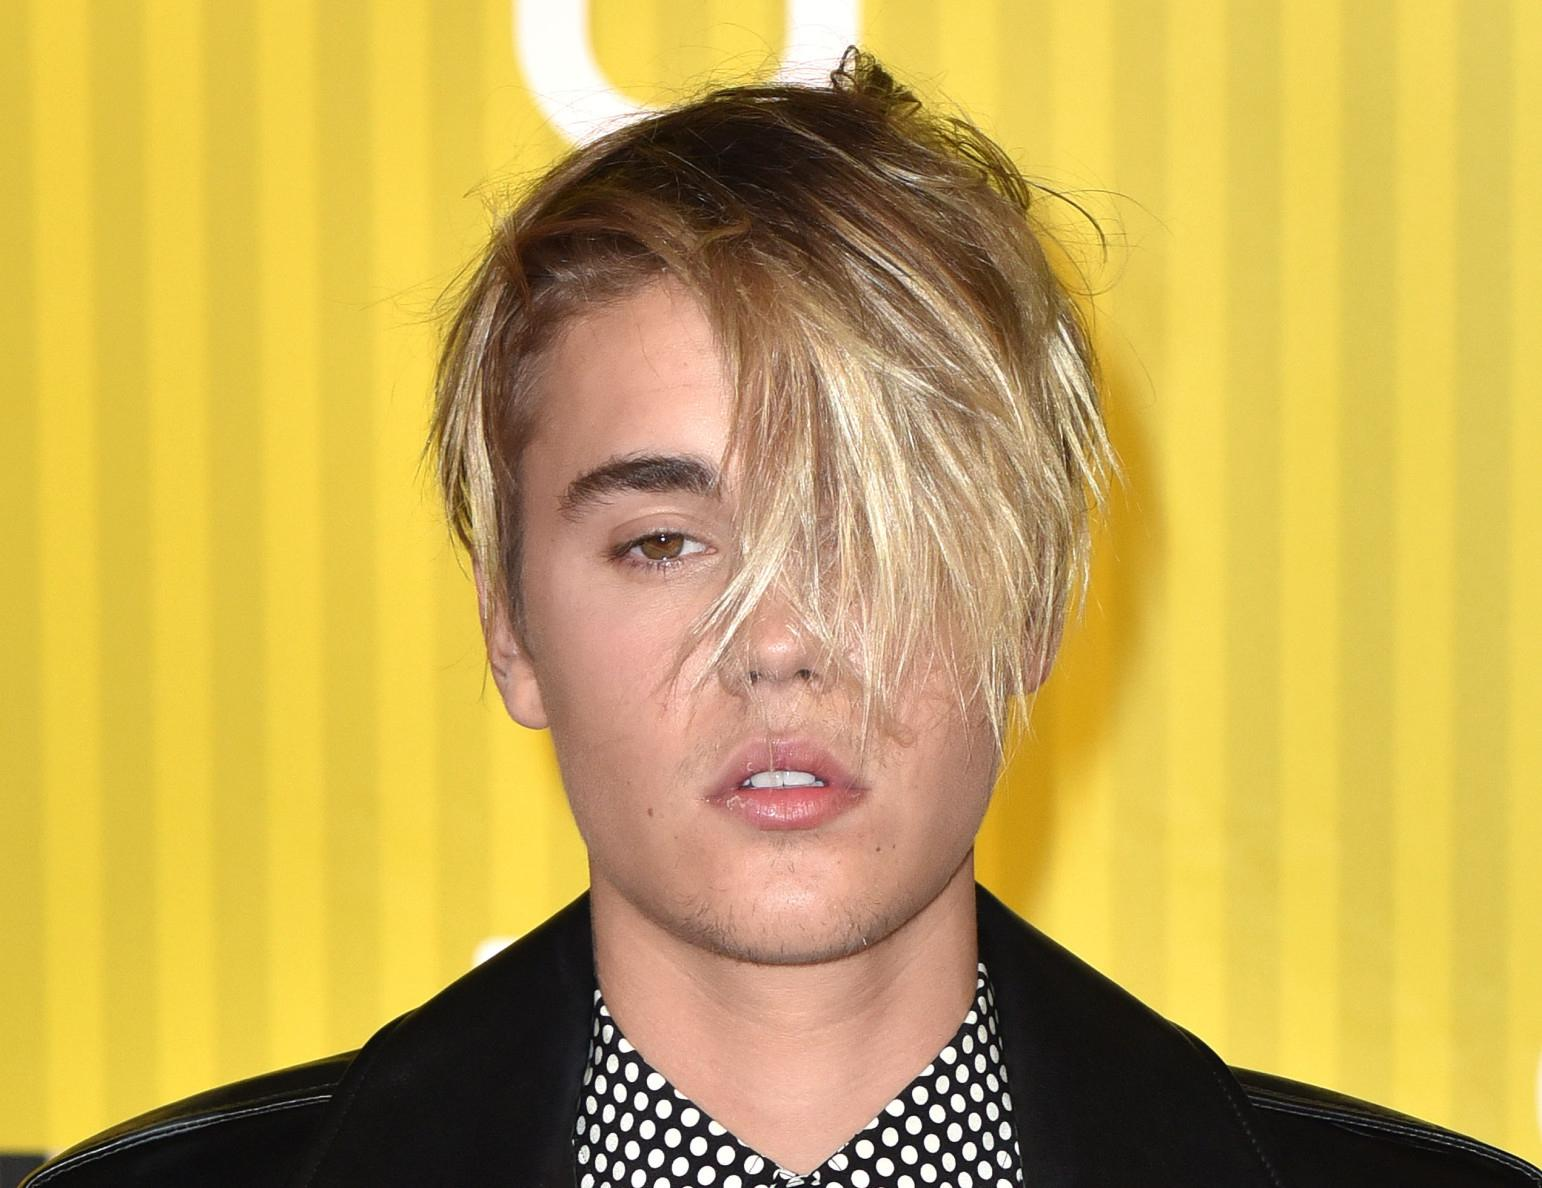 .@JustinBieber and @JaredLeto have a strange connection: http://t.co/kgWrUrQegN http://t.co/T50bYTHgtN